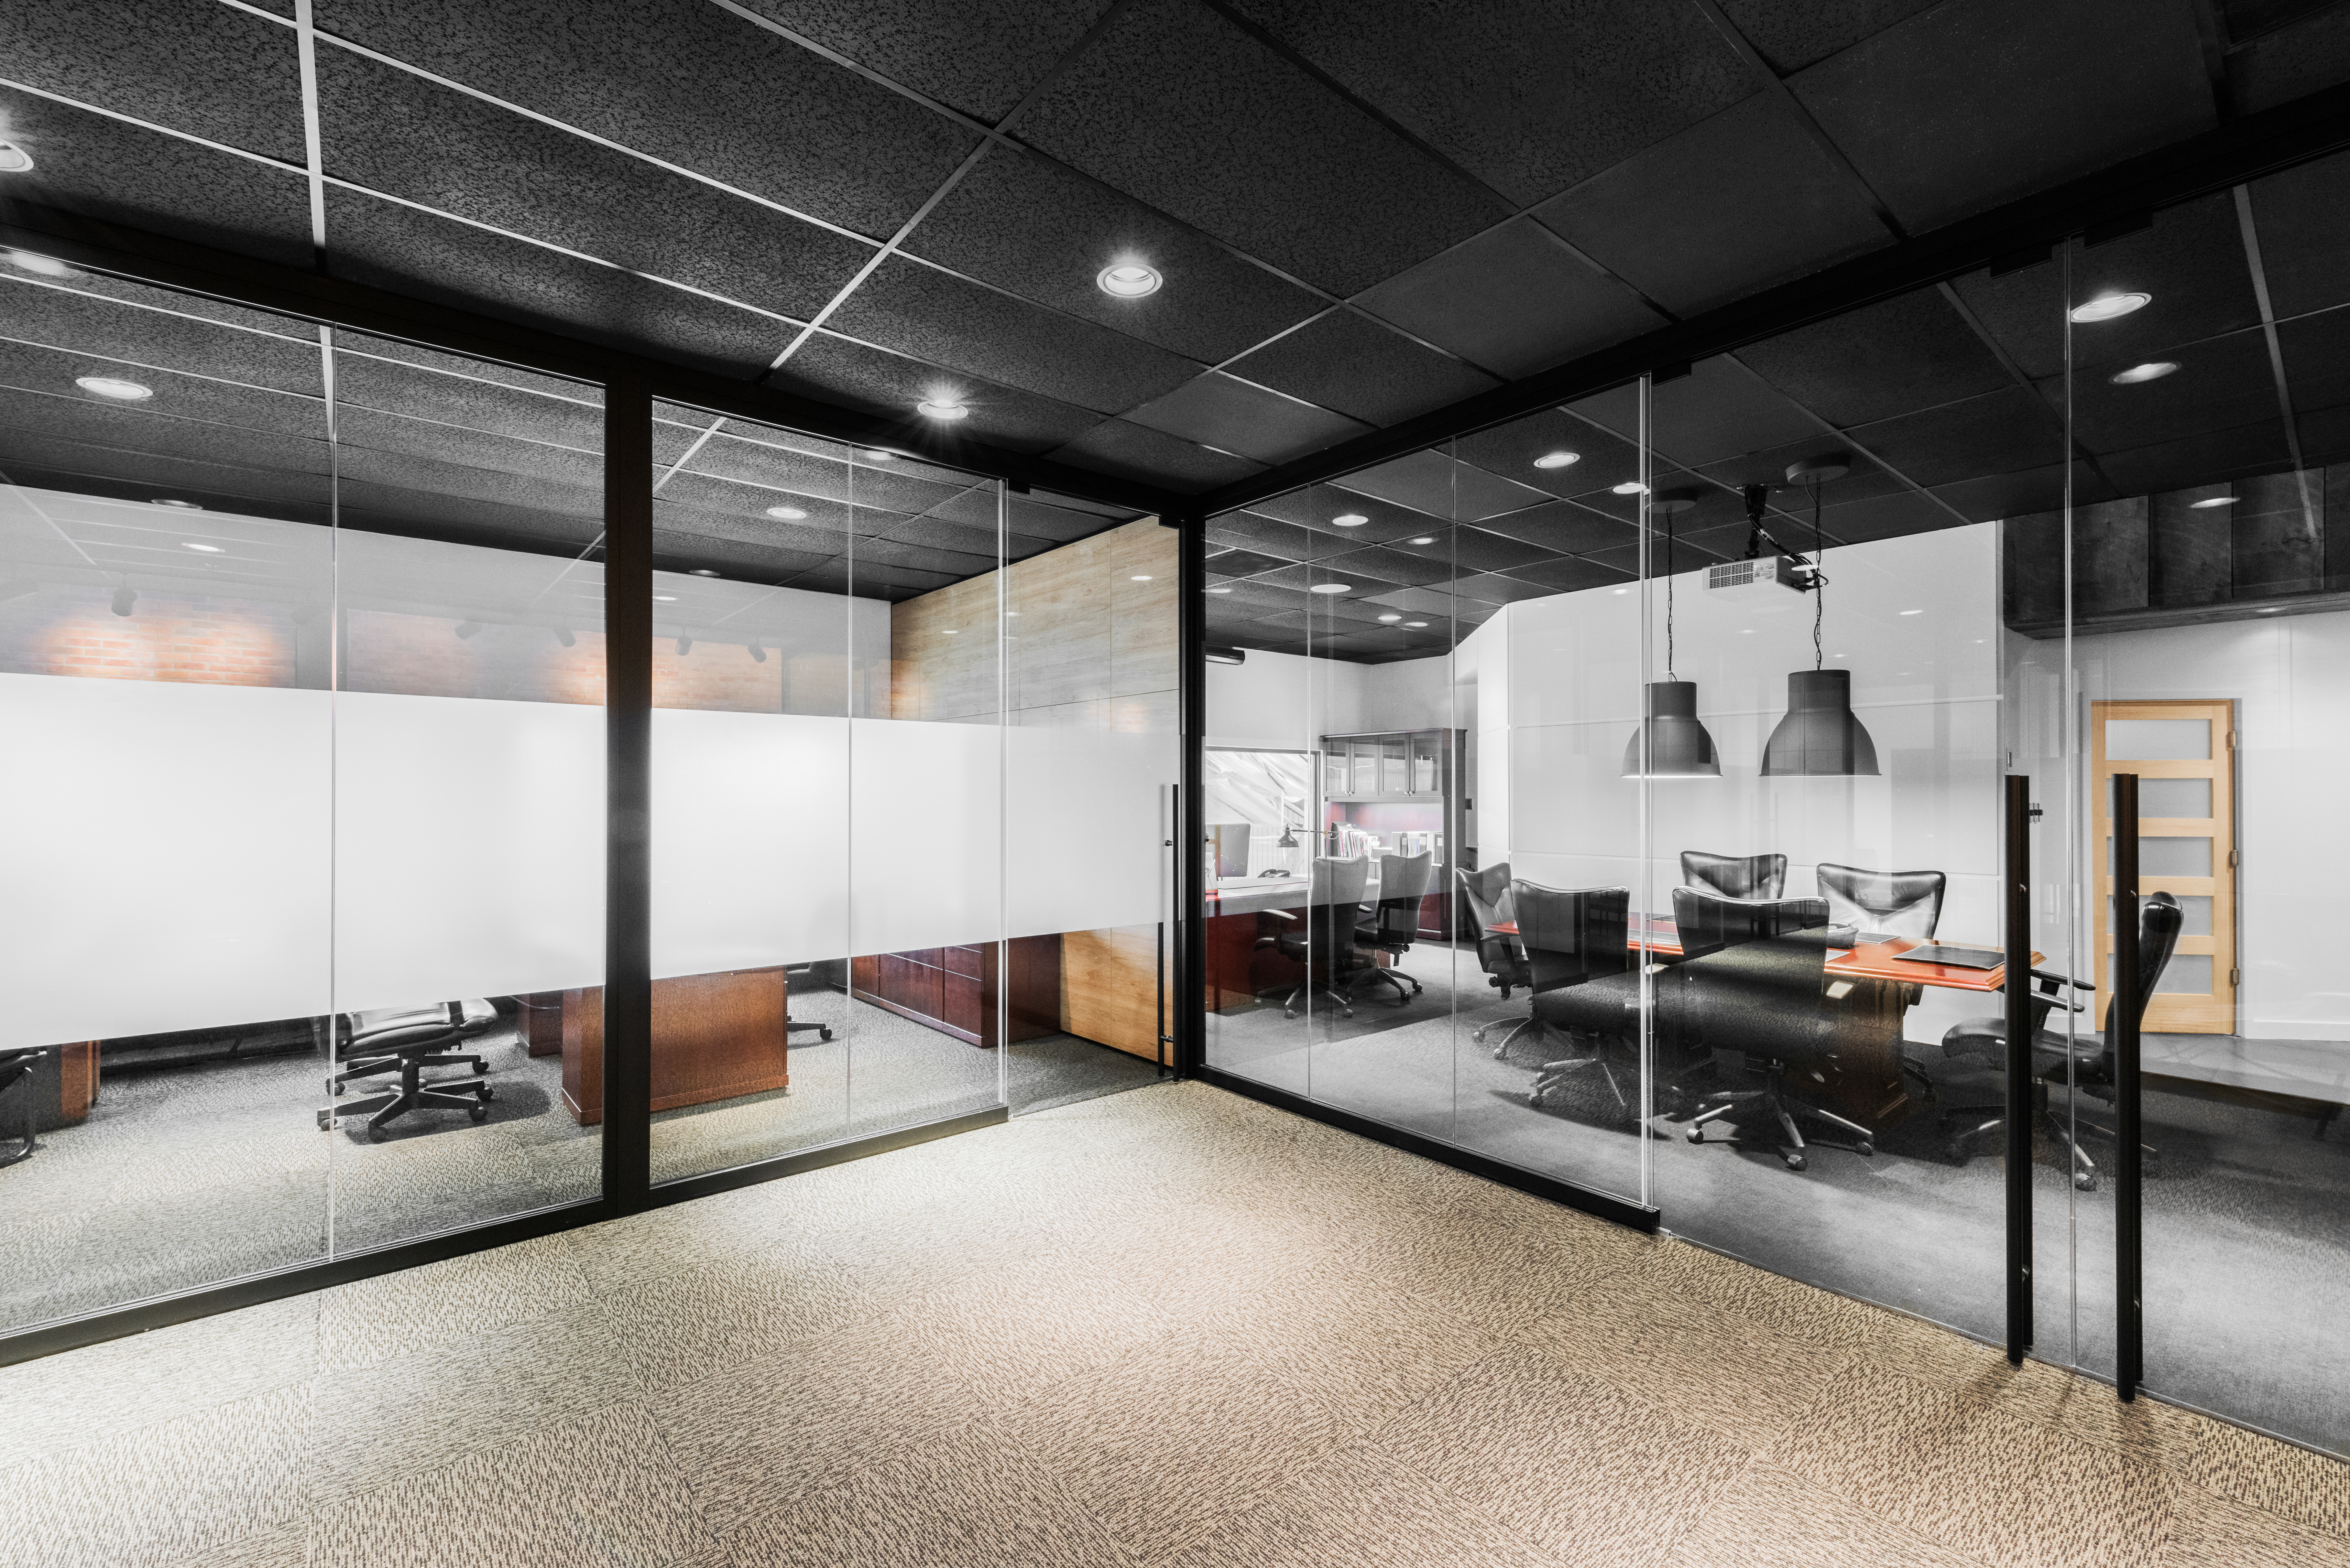 A real estate office with black interior glass walls